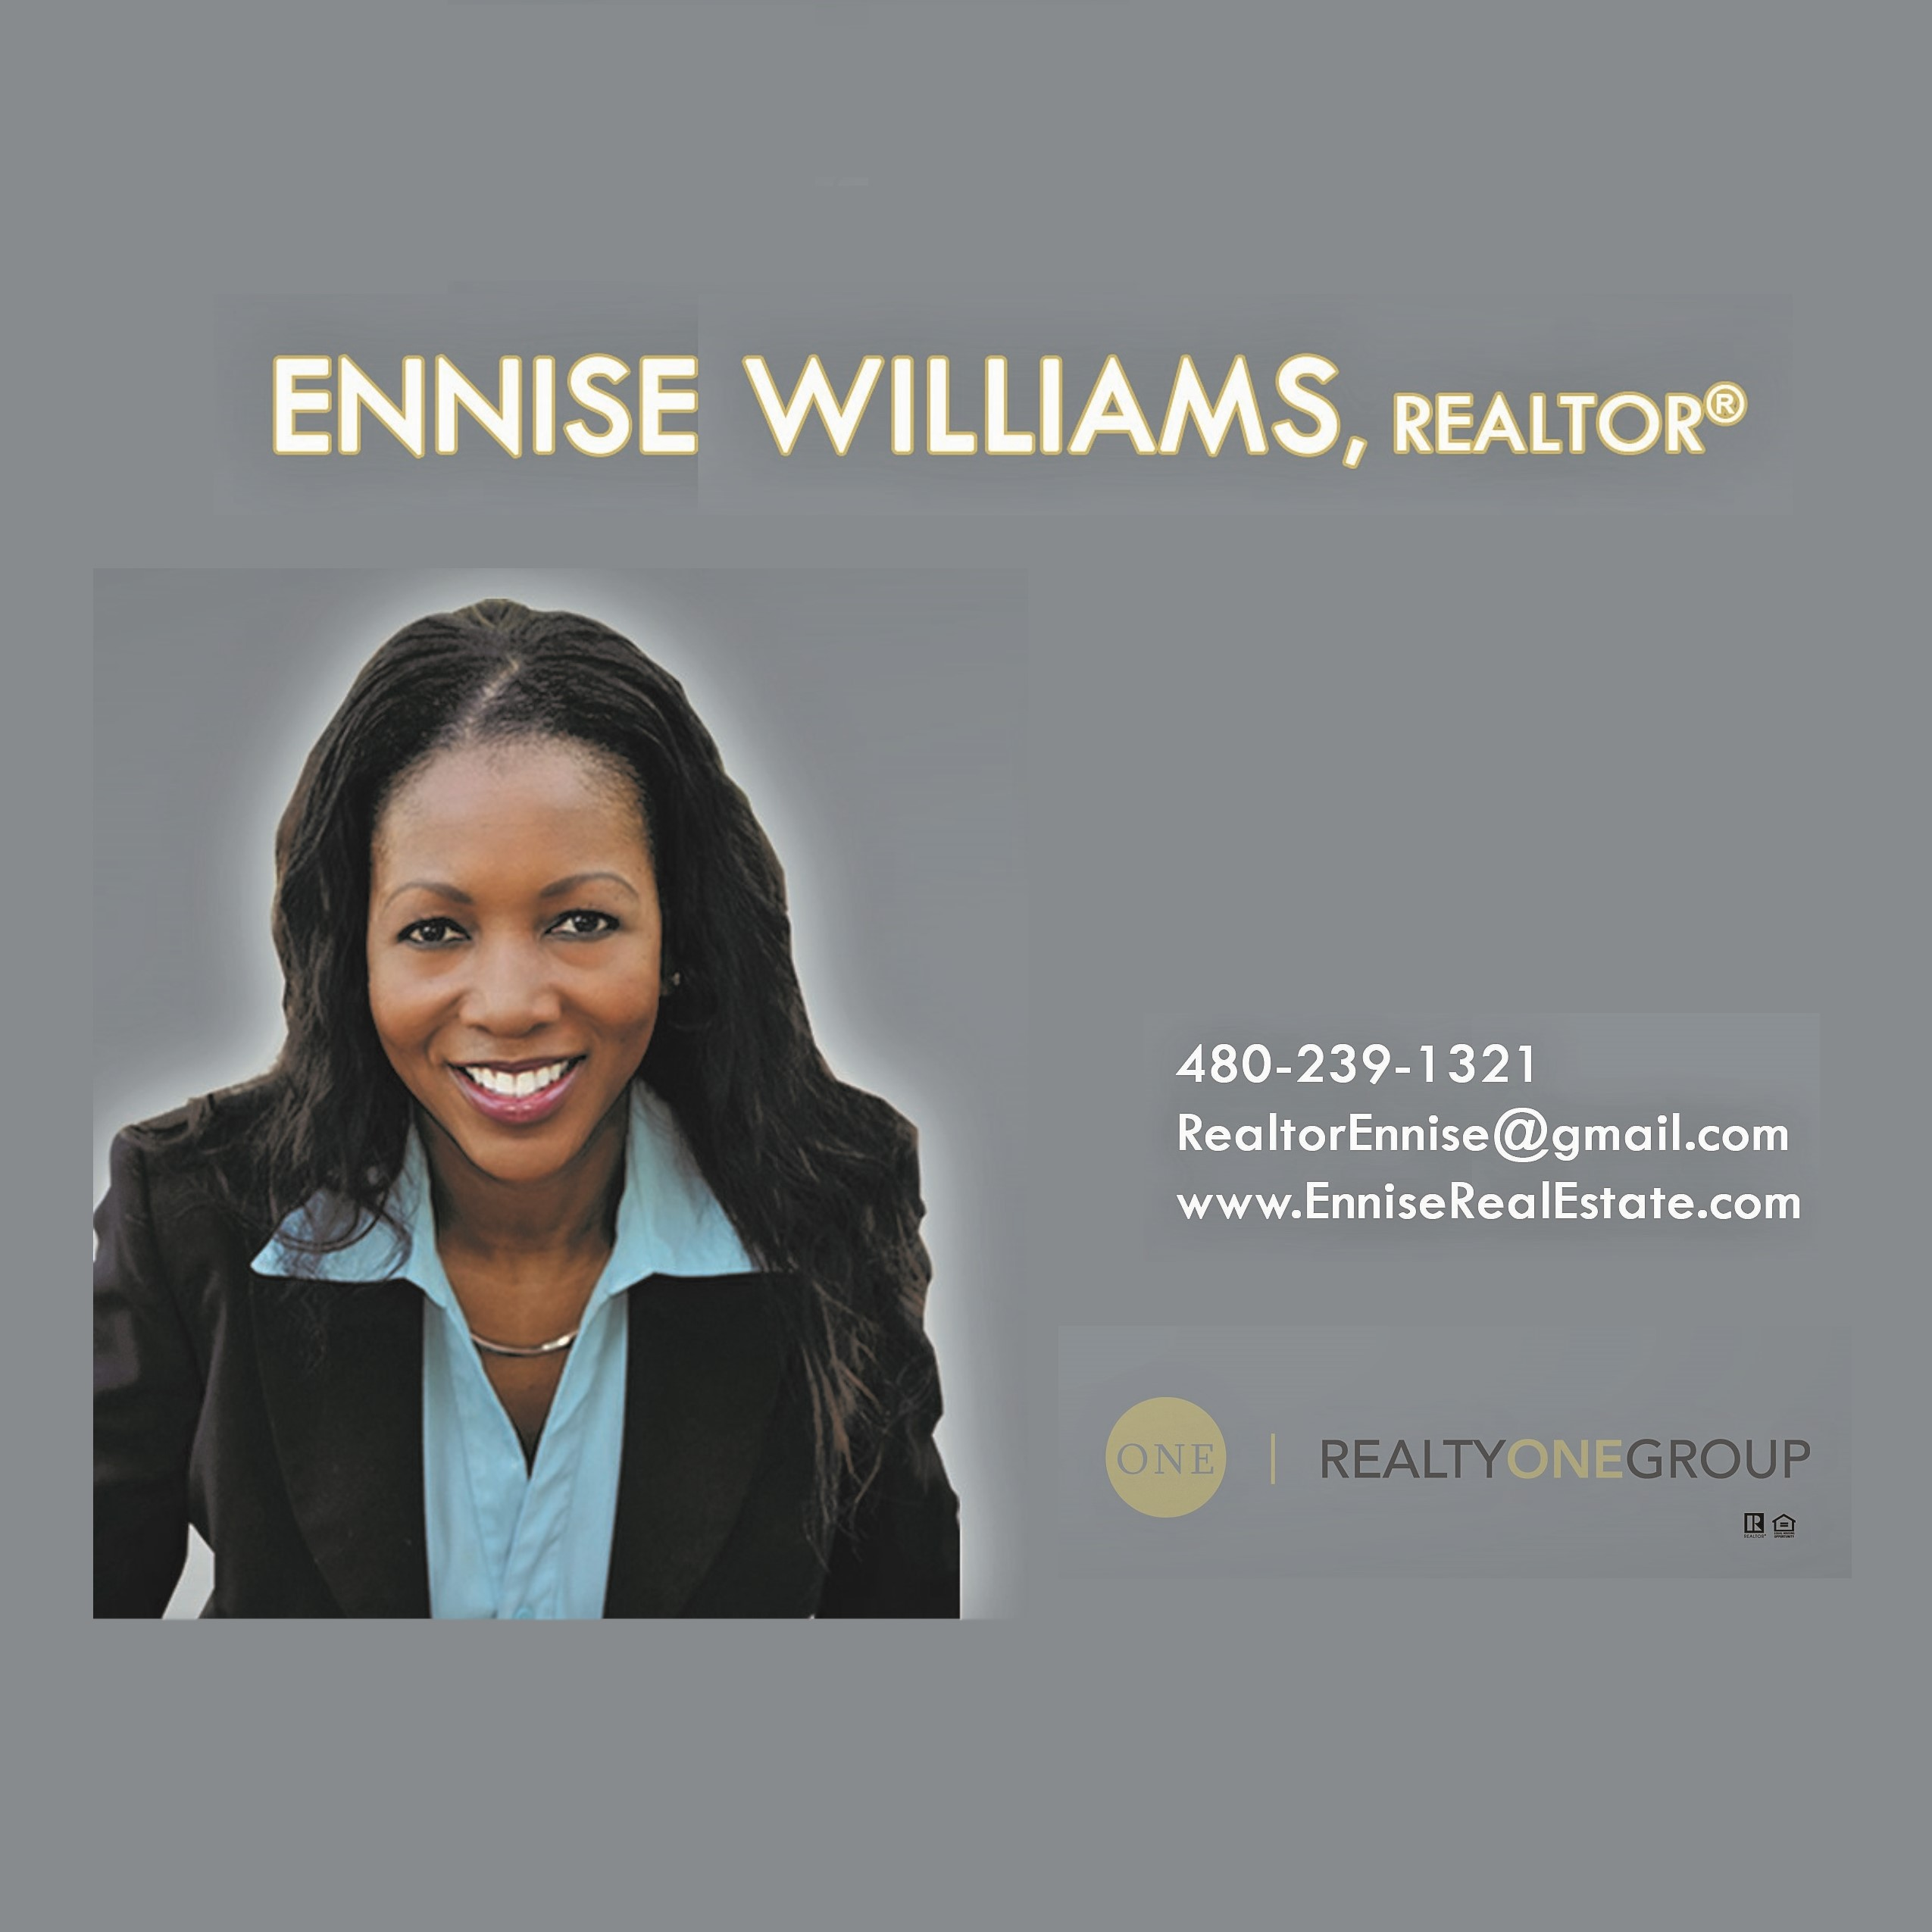 Ennise Williams, Realtor